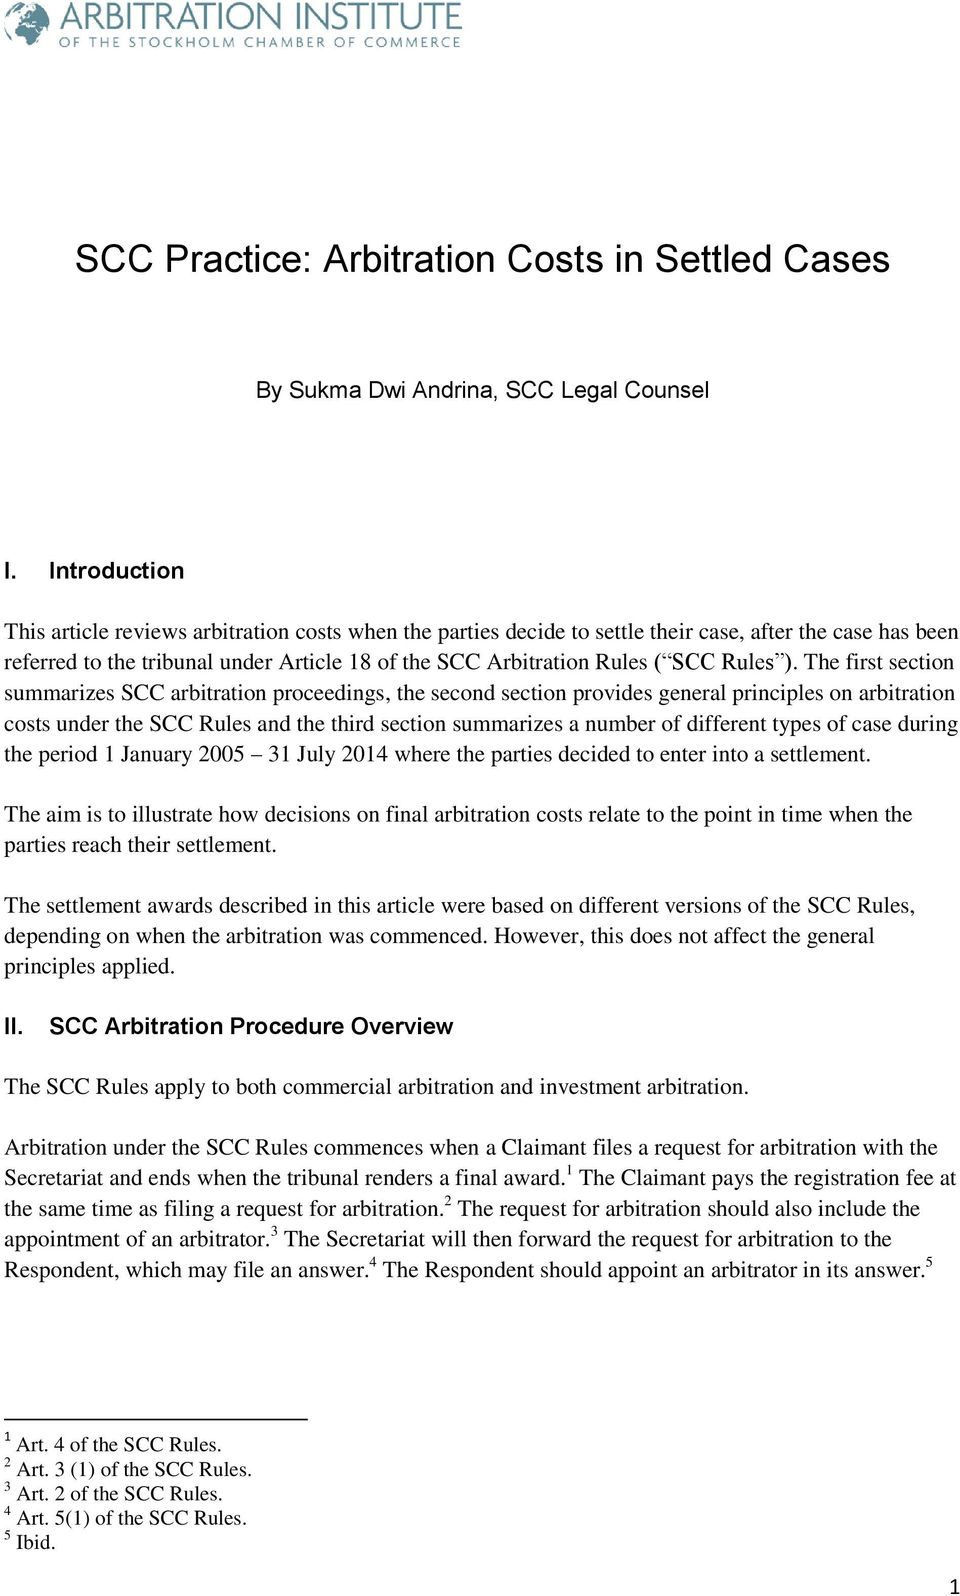 The first section summarizes SCC arbitration proceedings, the second section provides general principles on arbitration costs under the and the third section summarizes a number of different types of